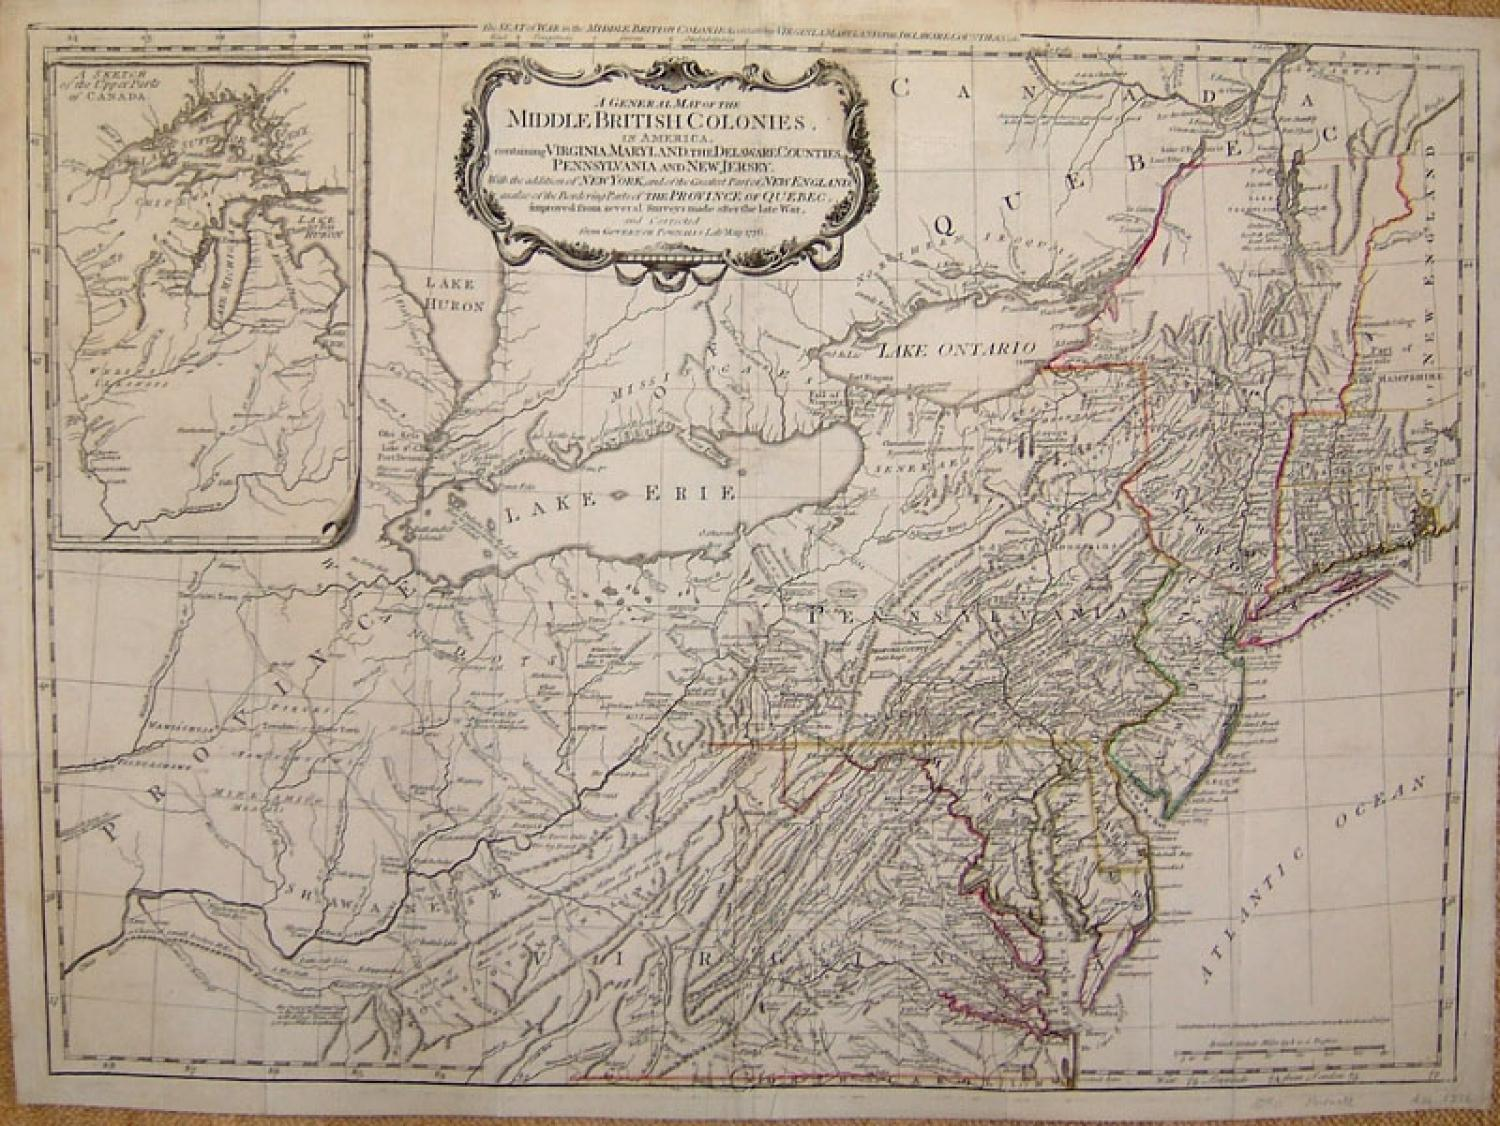 SOLD A general map of the middle British colonies in America